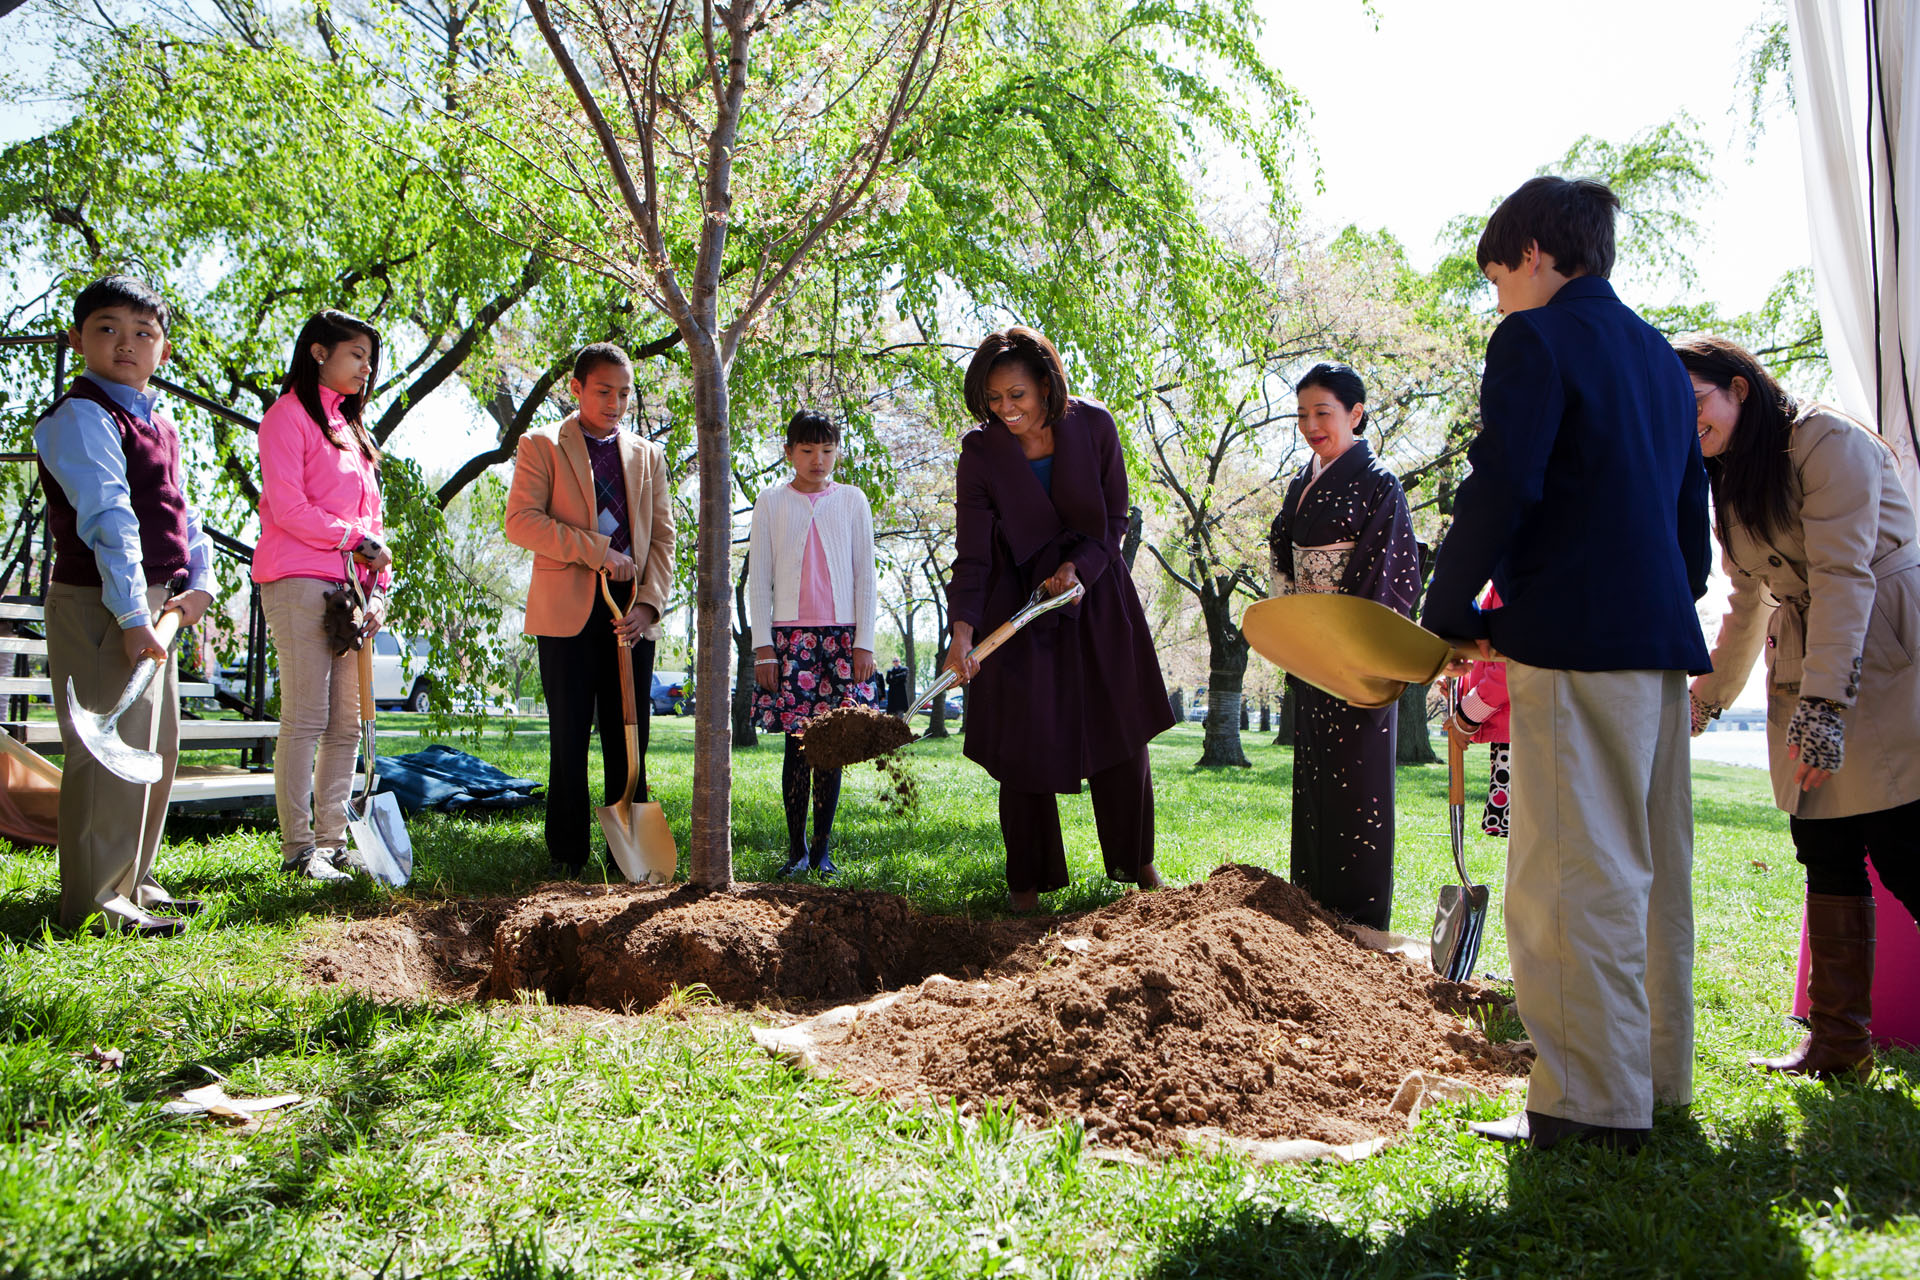 First Lady Michelle Obama participates in a centennial tree planting ceremony during the National Cherry Blossom Festival (March 27, 2012)